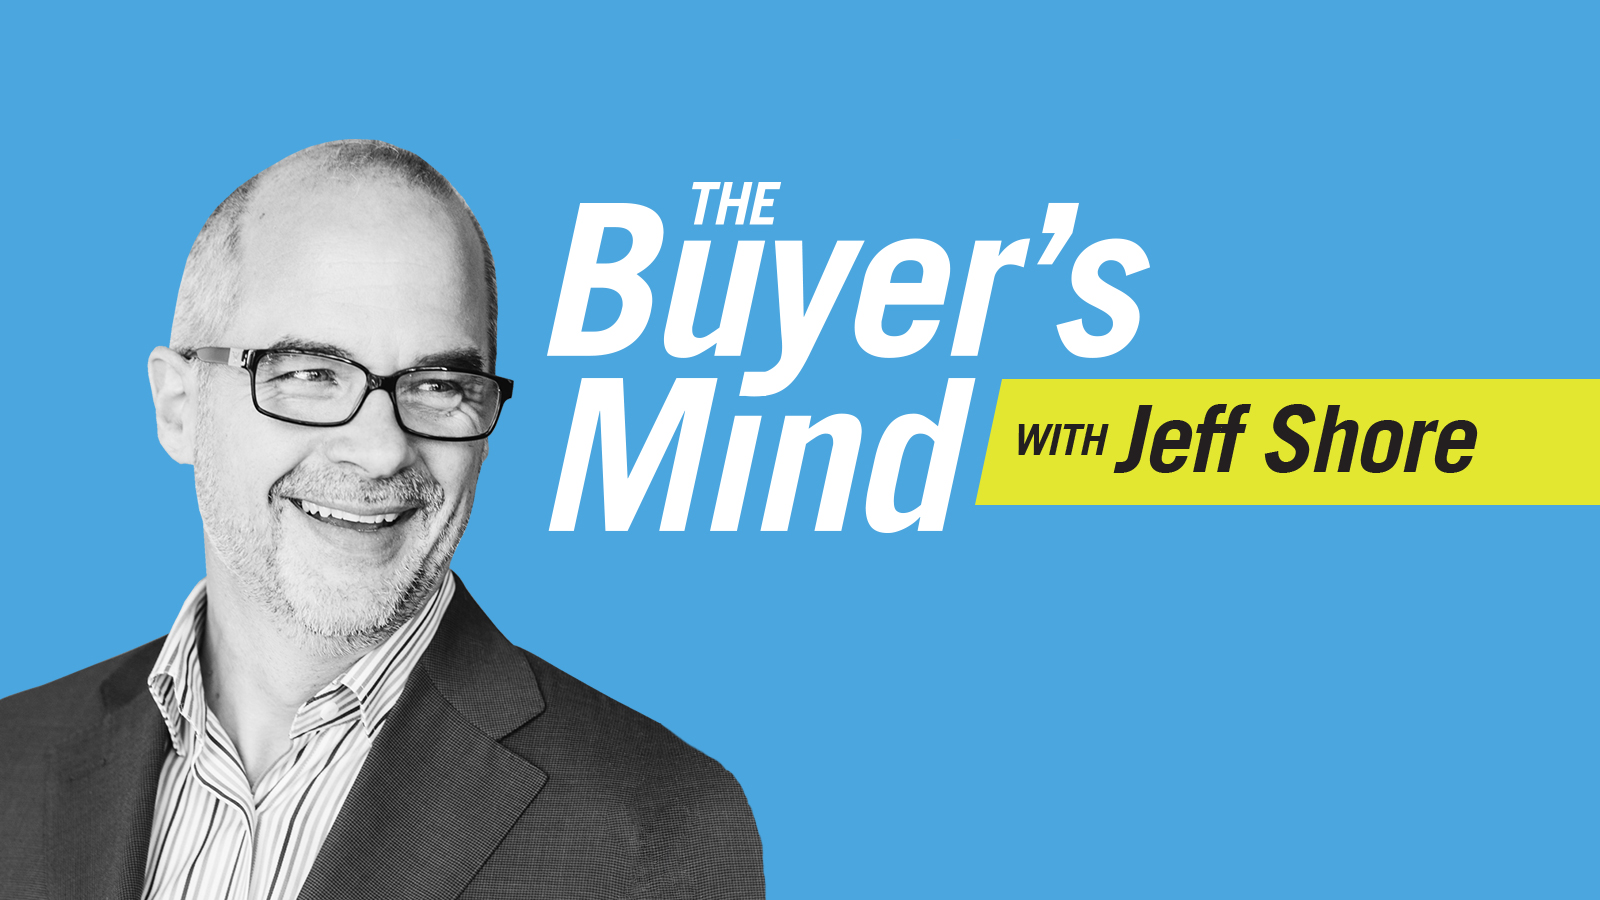 The Buyer's Mind with Jeff Shore